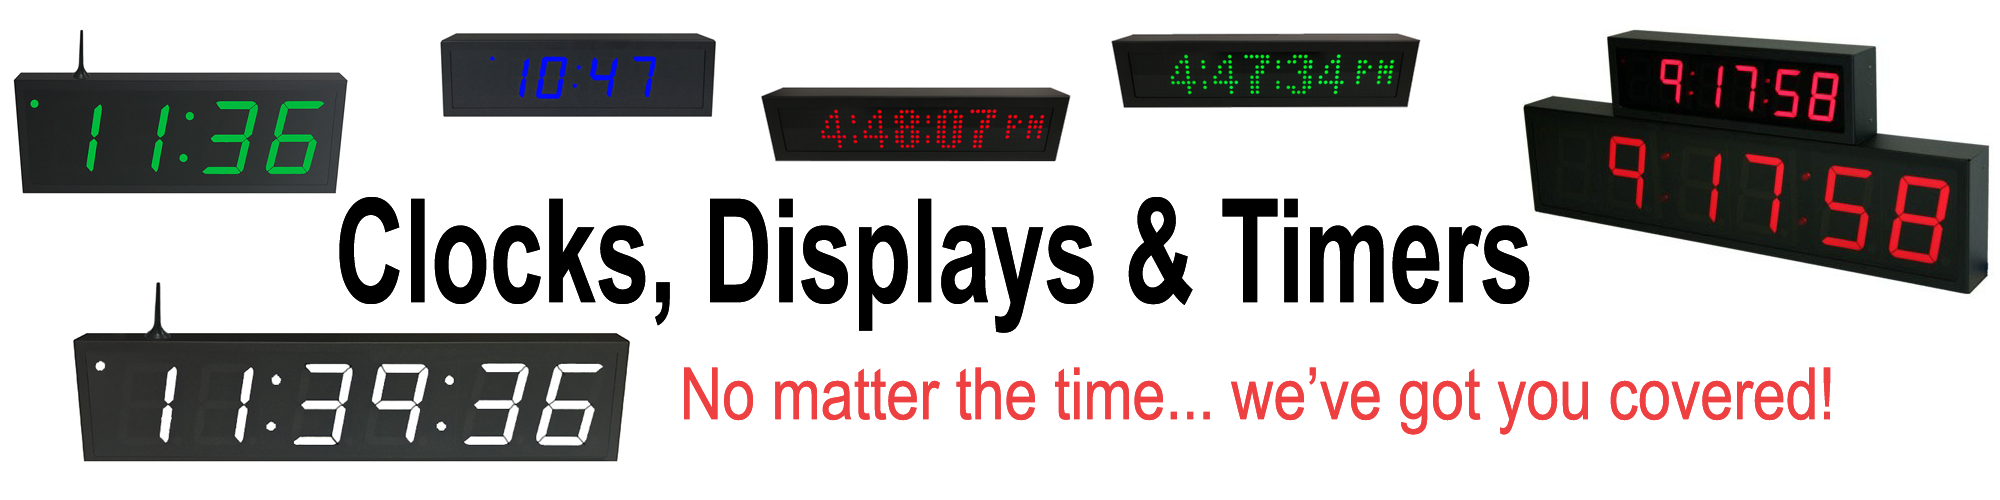 ntp poe and wifi displays timemachines inc